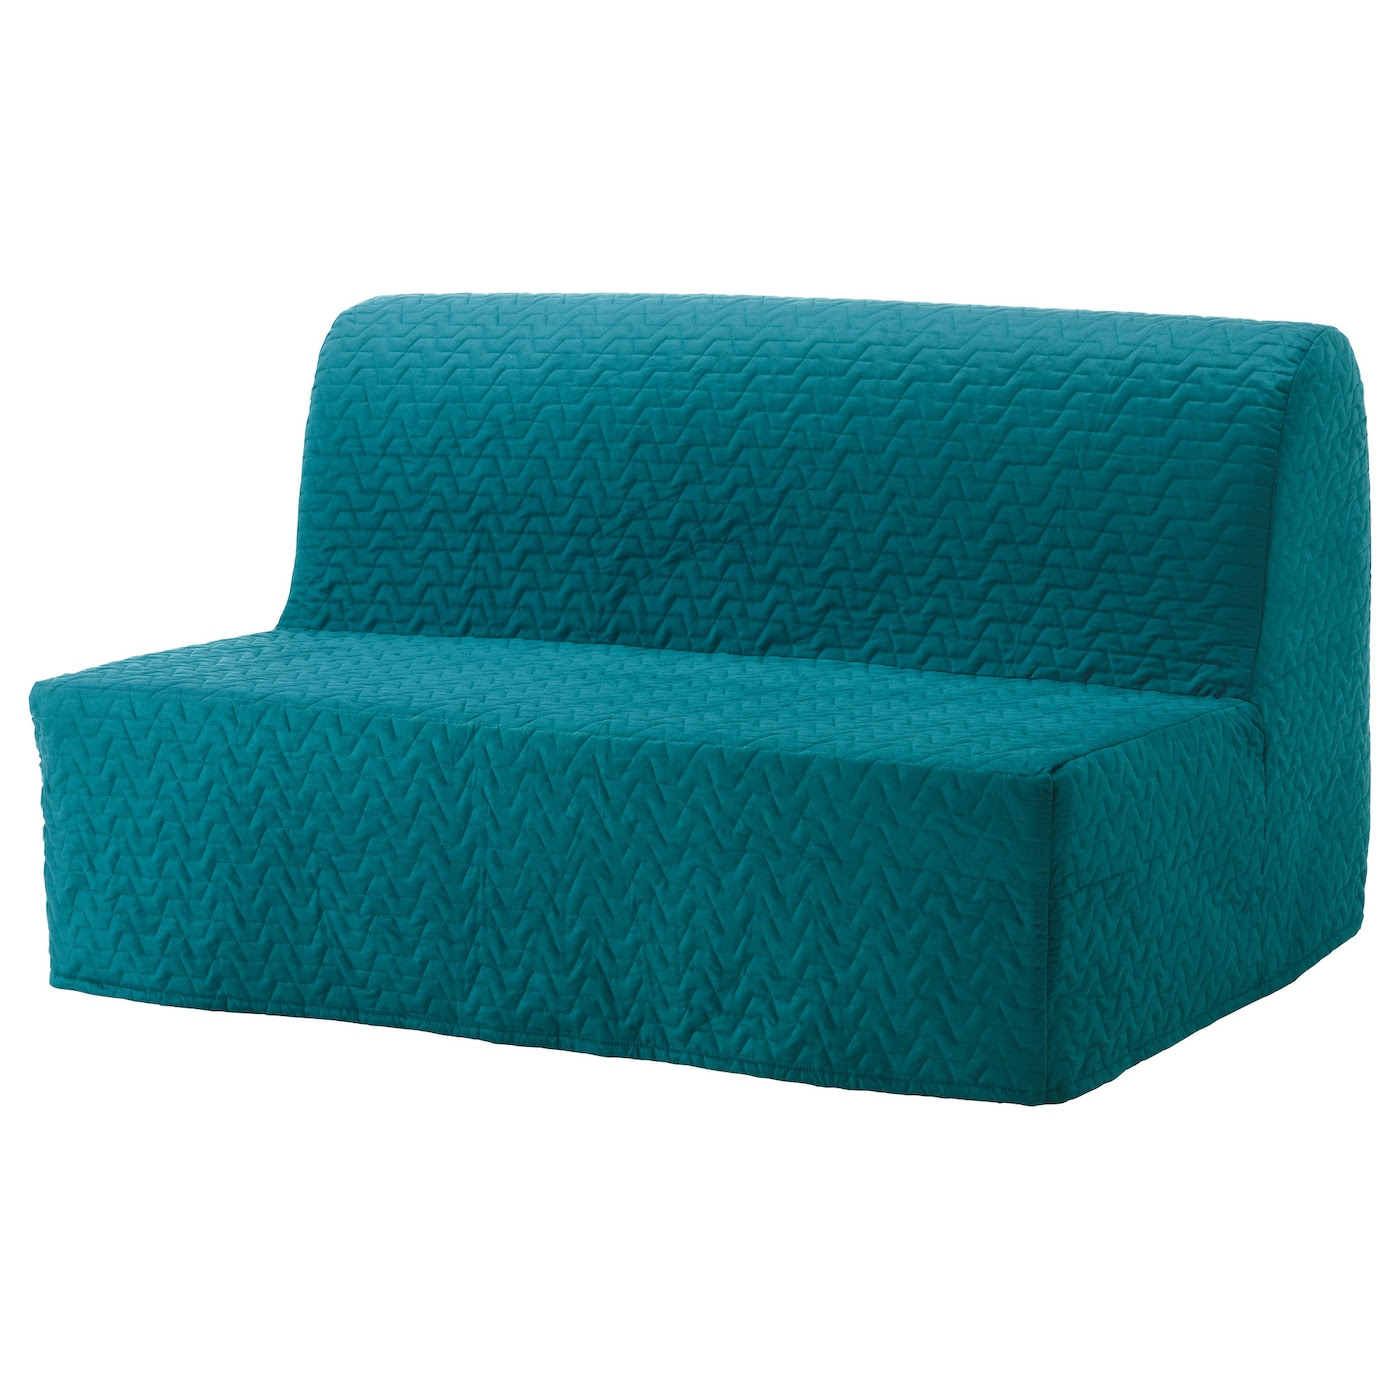 Lycksele Two Seat Sofa Bed Cover Vallarum Turquoise Ikea